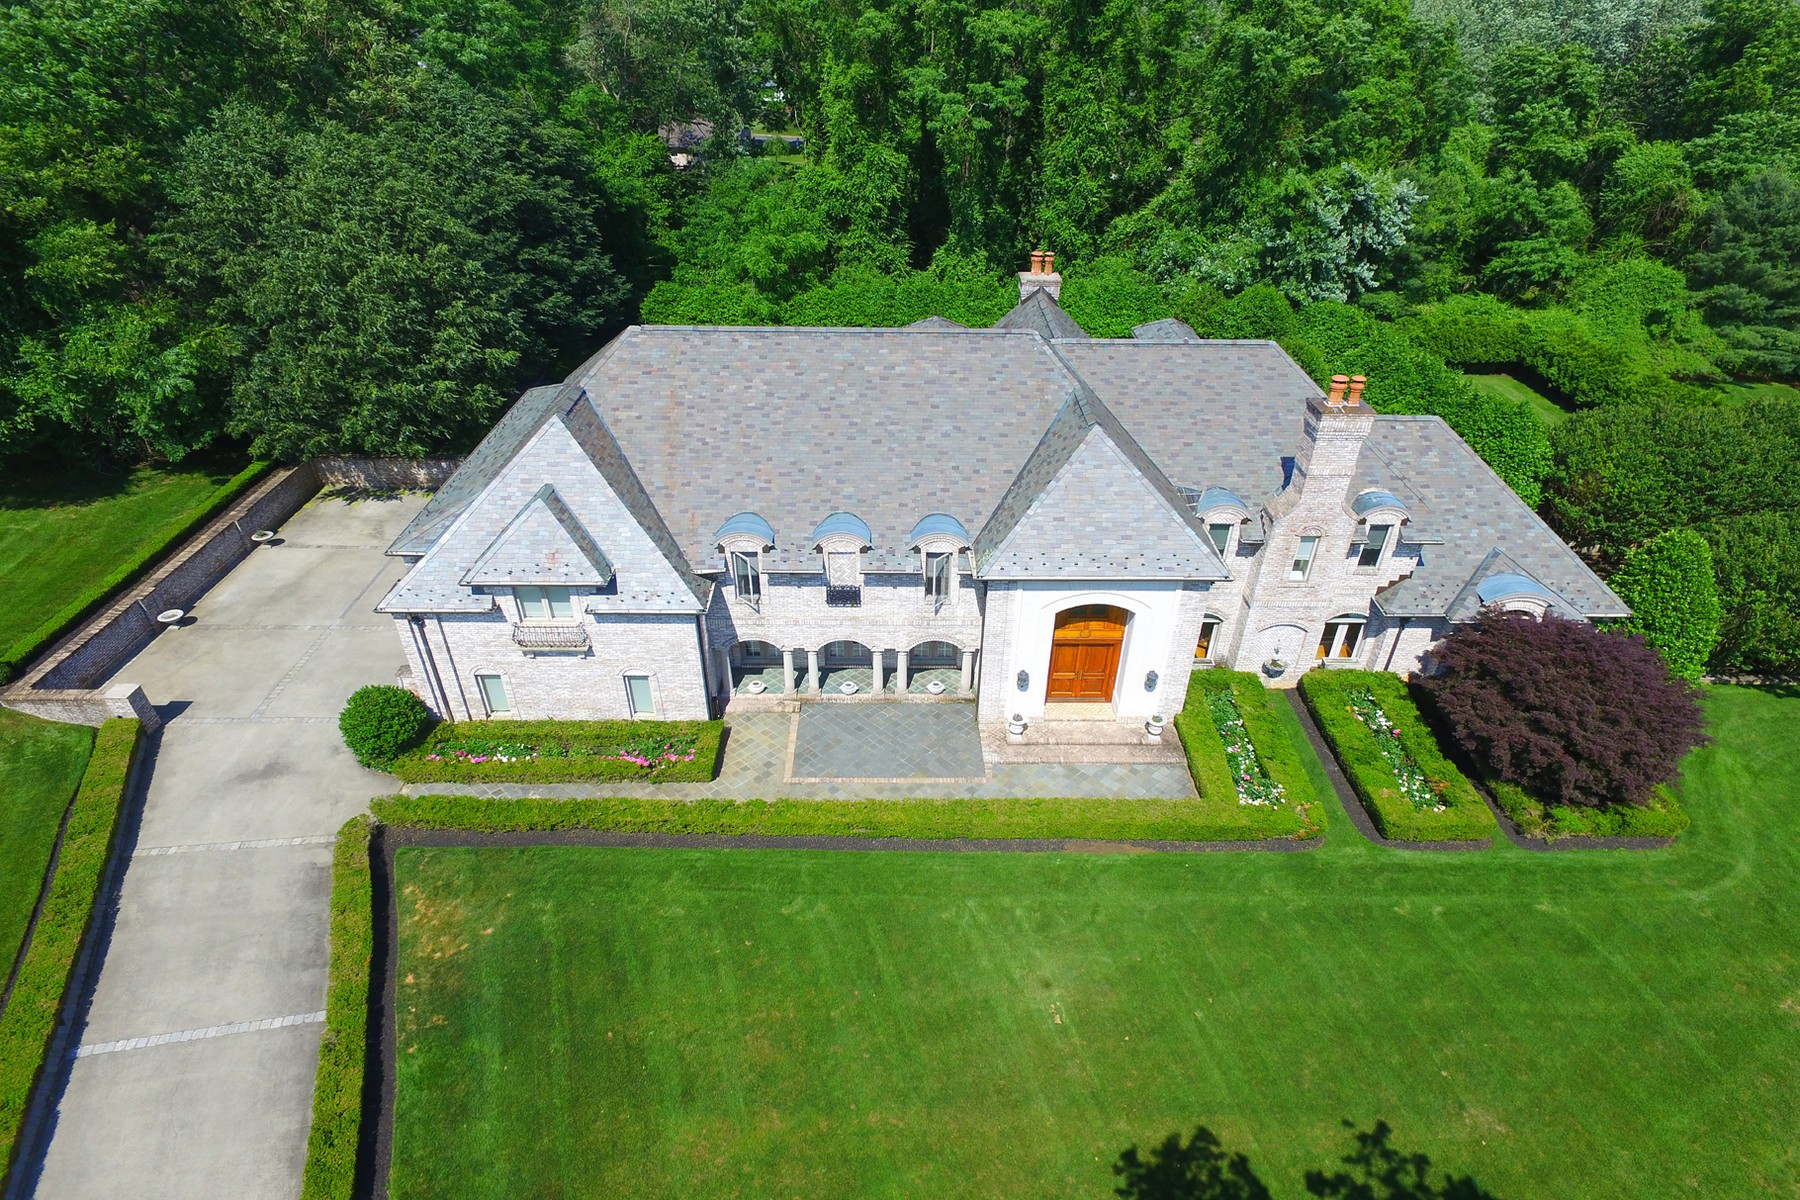 Single Family Home for Sale at French Manor 14 Brandywine Ln Colts Neck, New Jersey 07722 United States